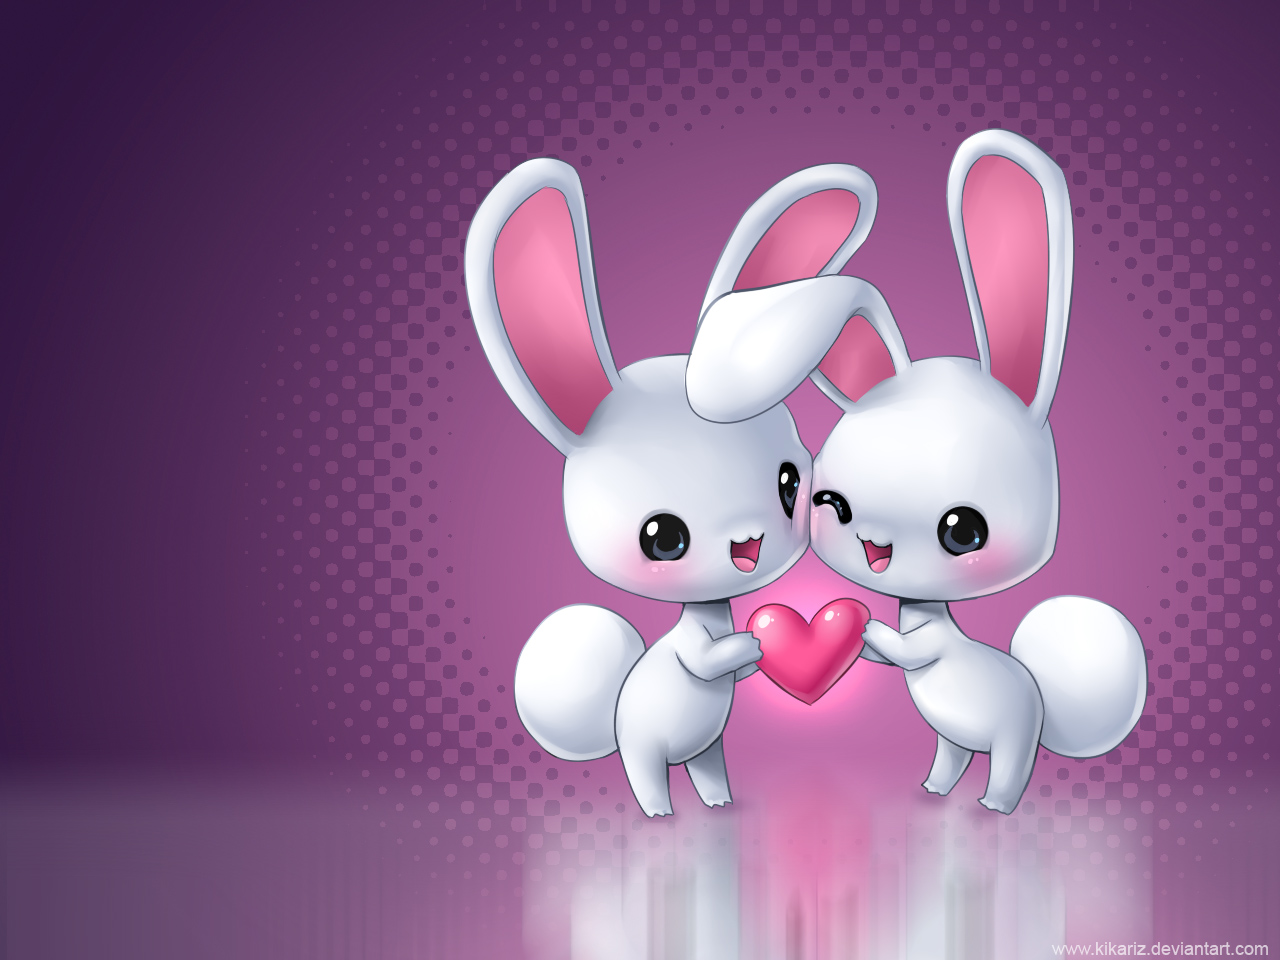 3d Animated Love Images HD Wallpaper